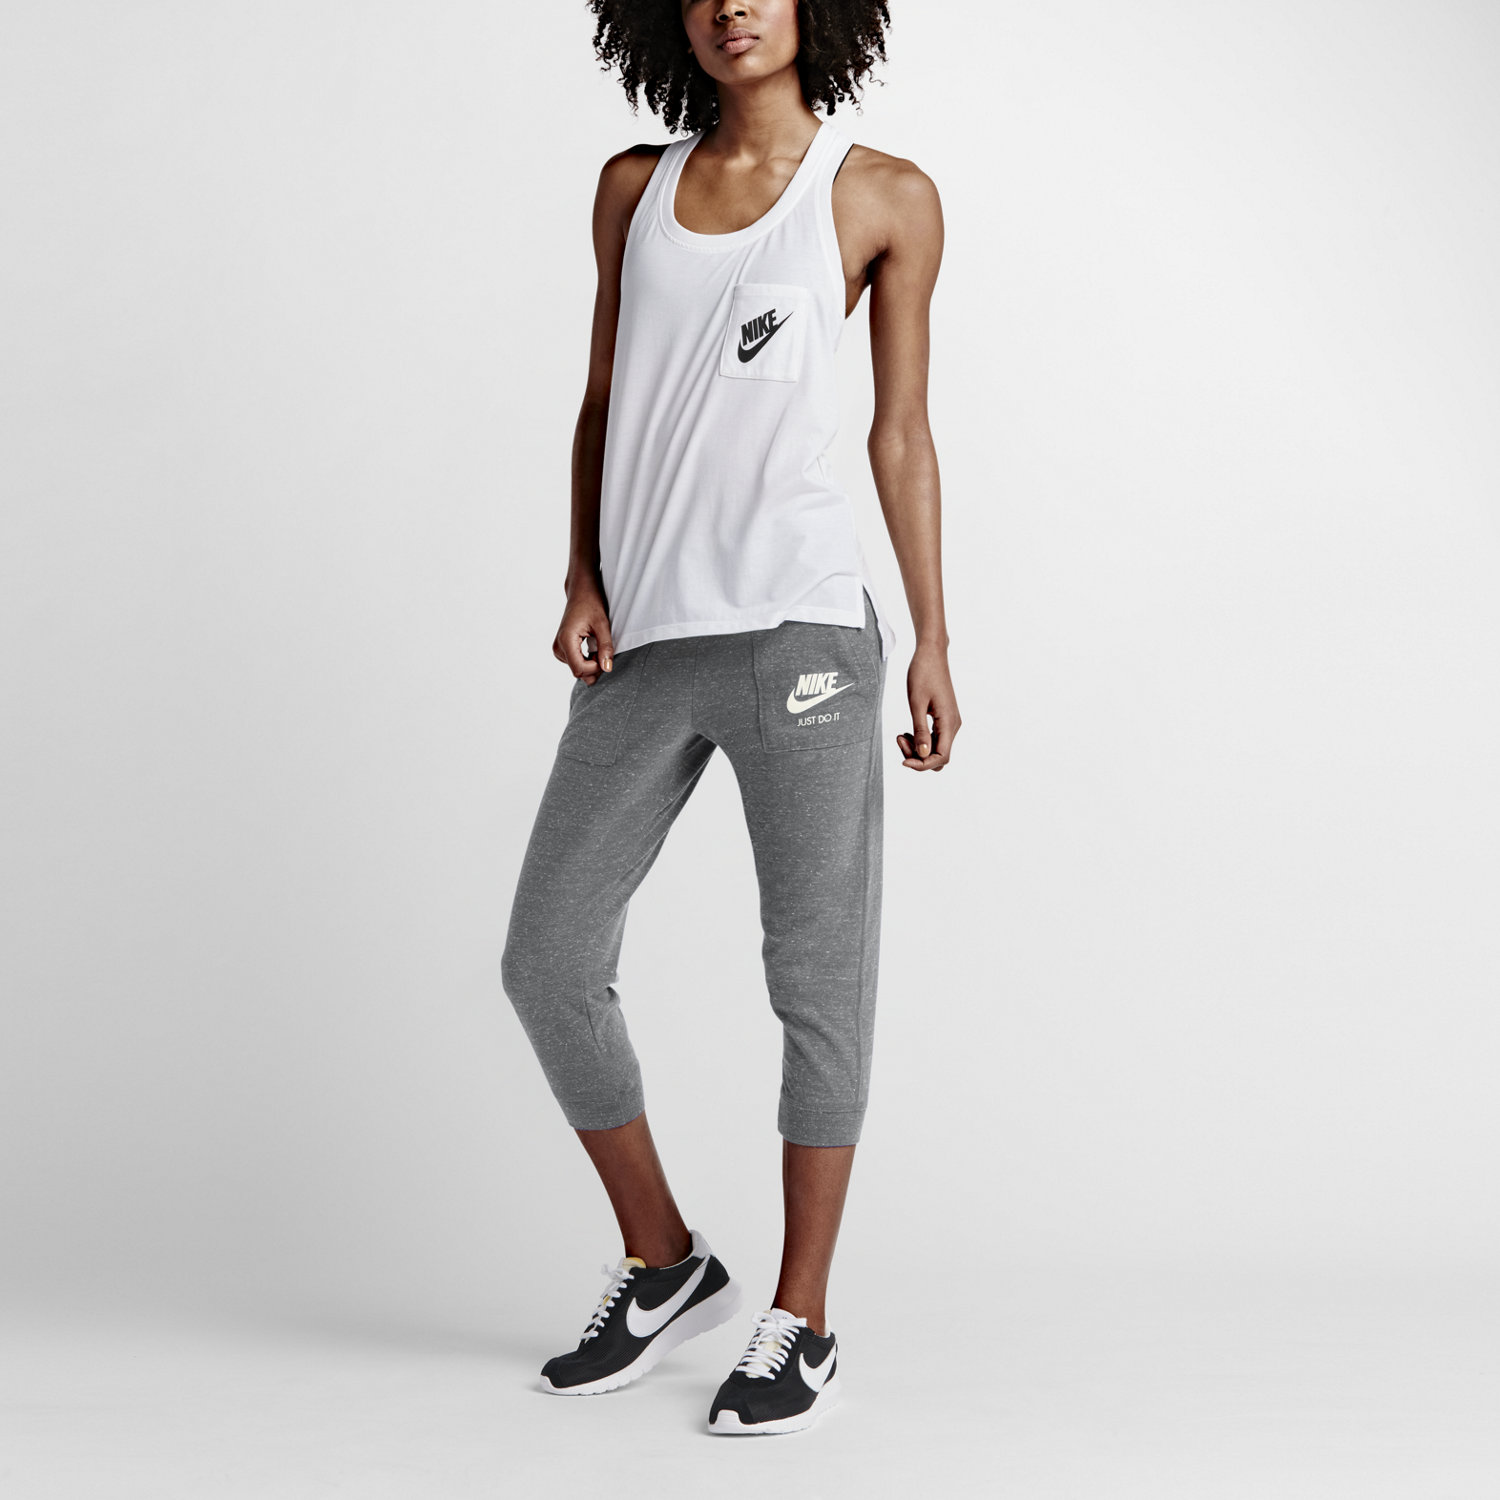 Nike Clothes For Women | www.imgkid.com - The Image Kid Has It!